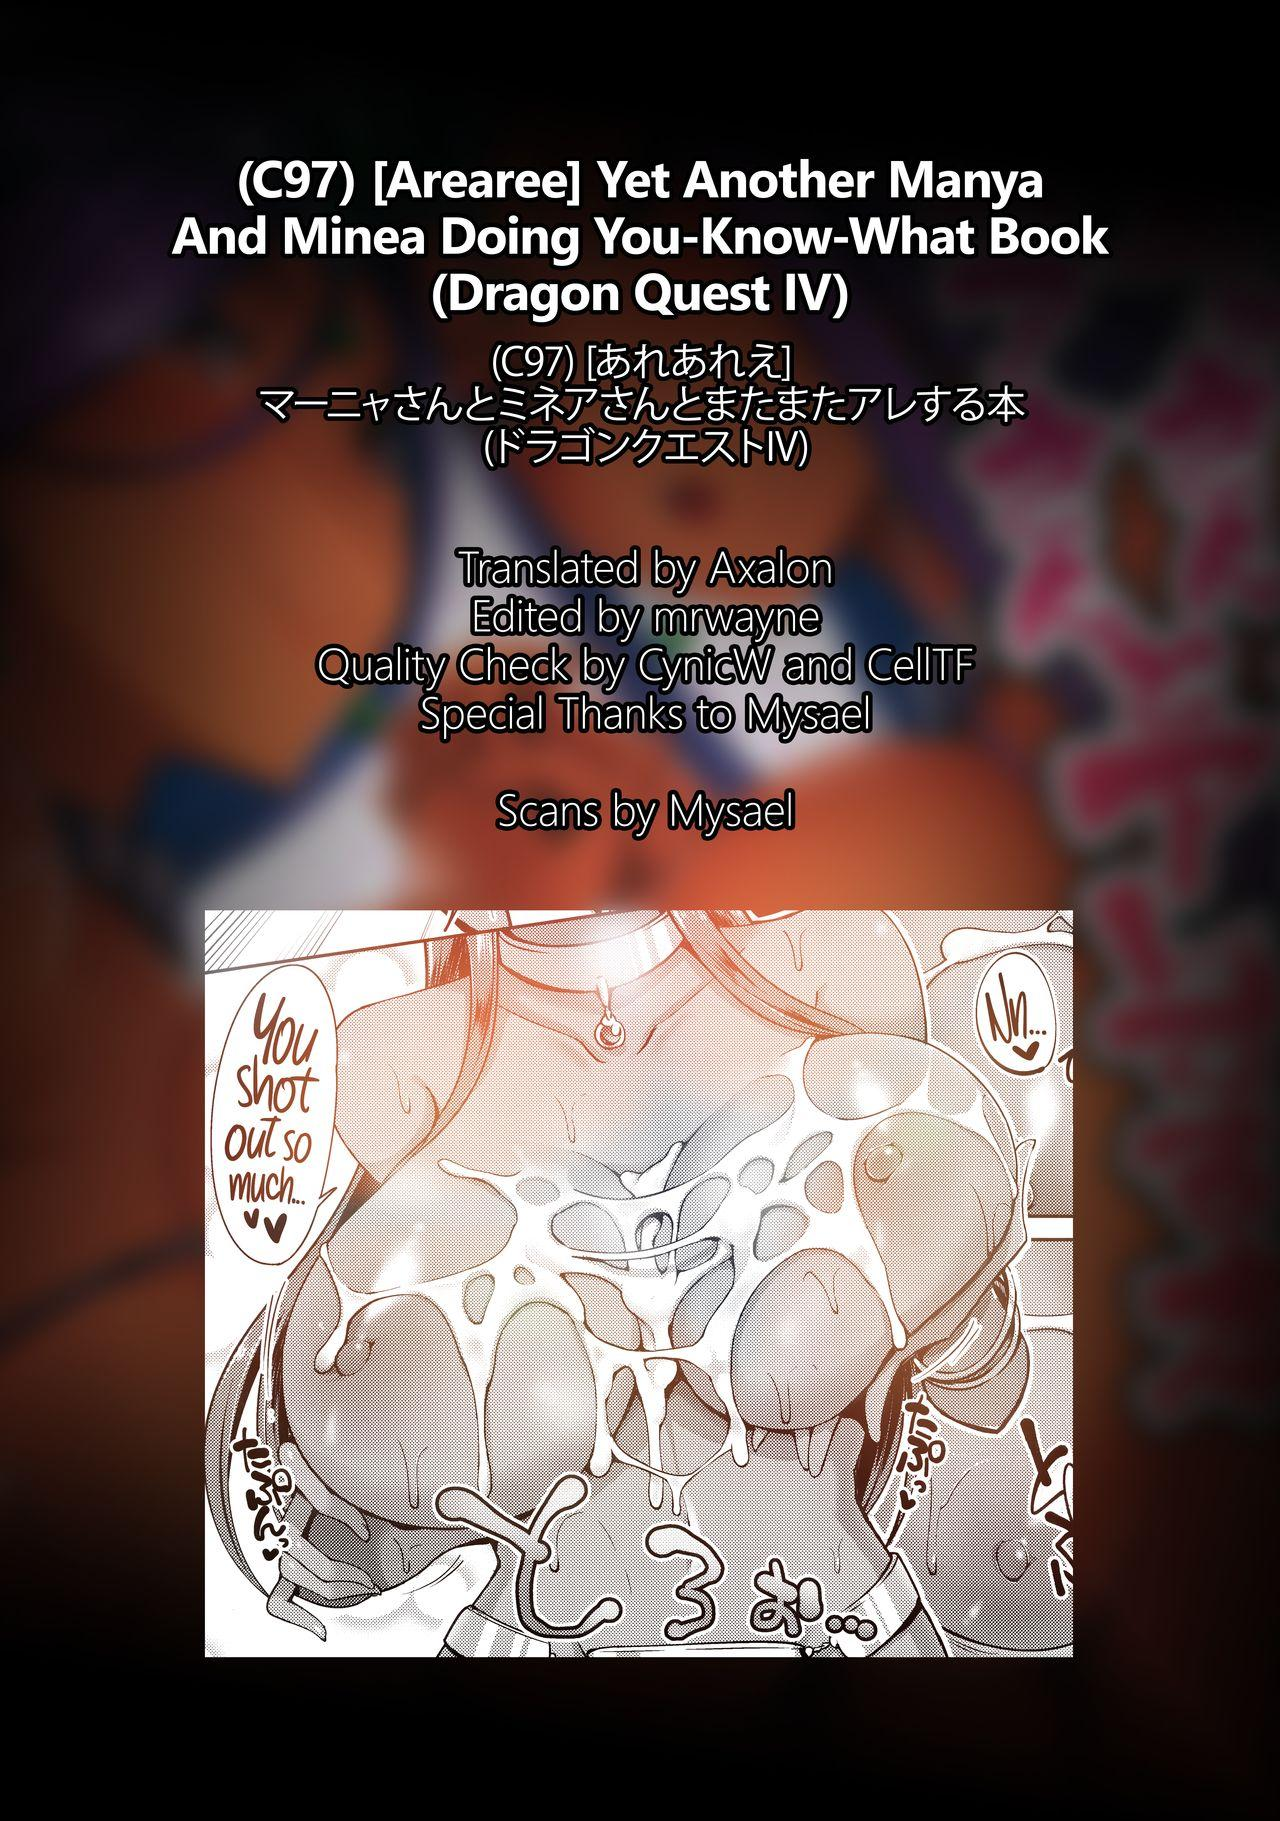 (C97) [Arearee] Manya-san to Minea-san to Matamata Are Suru Hon | Yet Another Manya And Minea Doing You-Know-What Book (Dragon Quest IV) [English] =TLL + mrwayne= 27